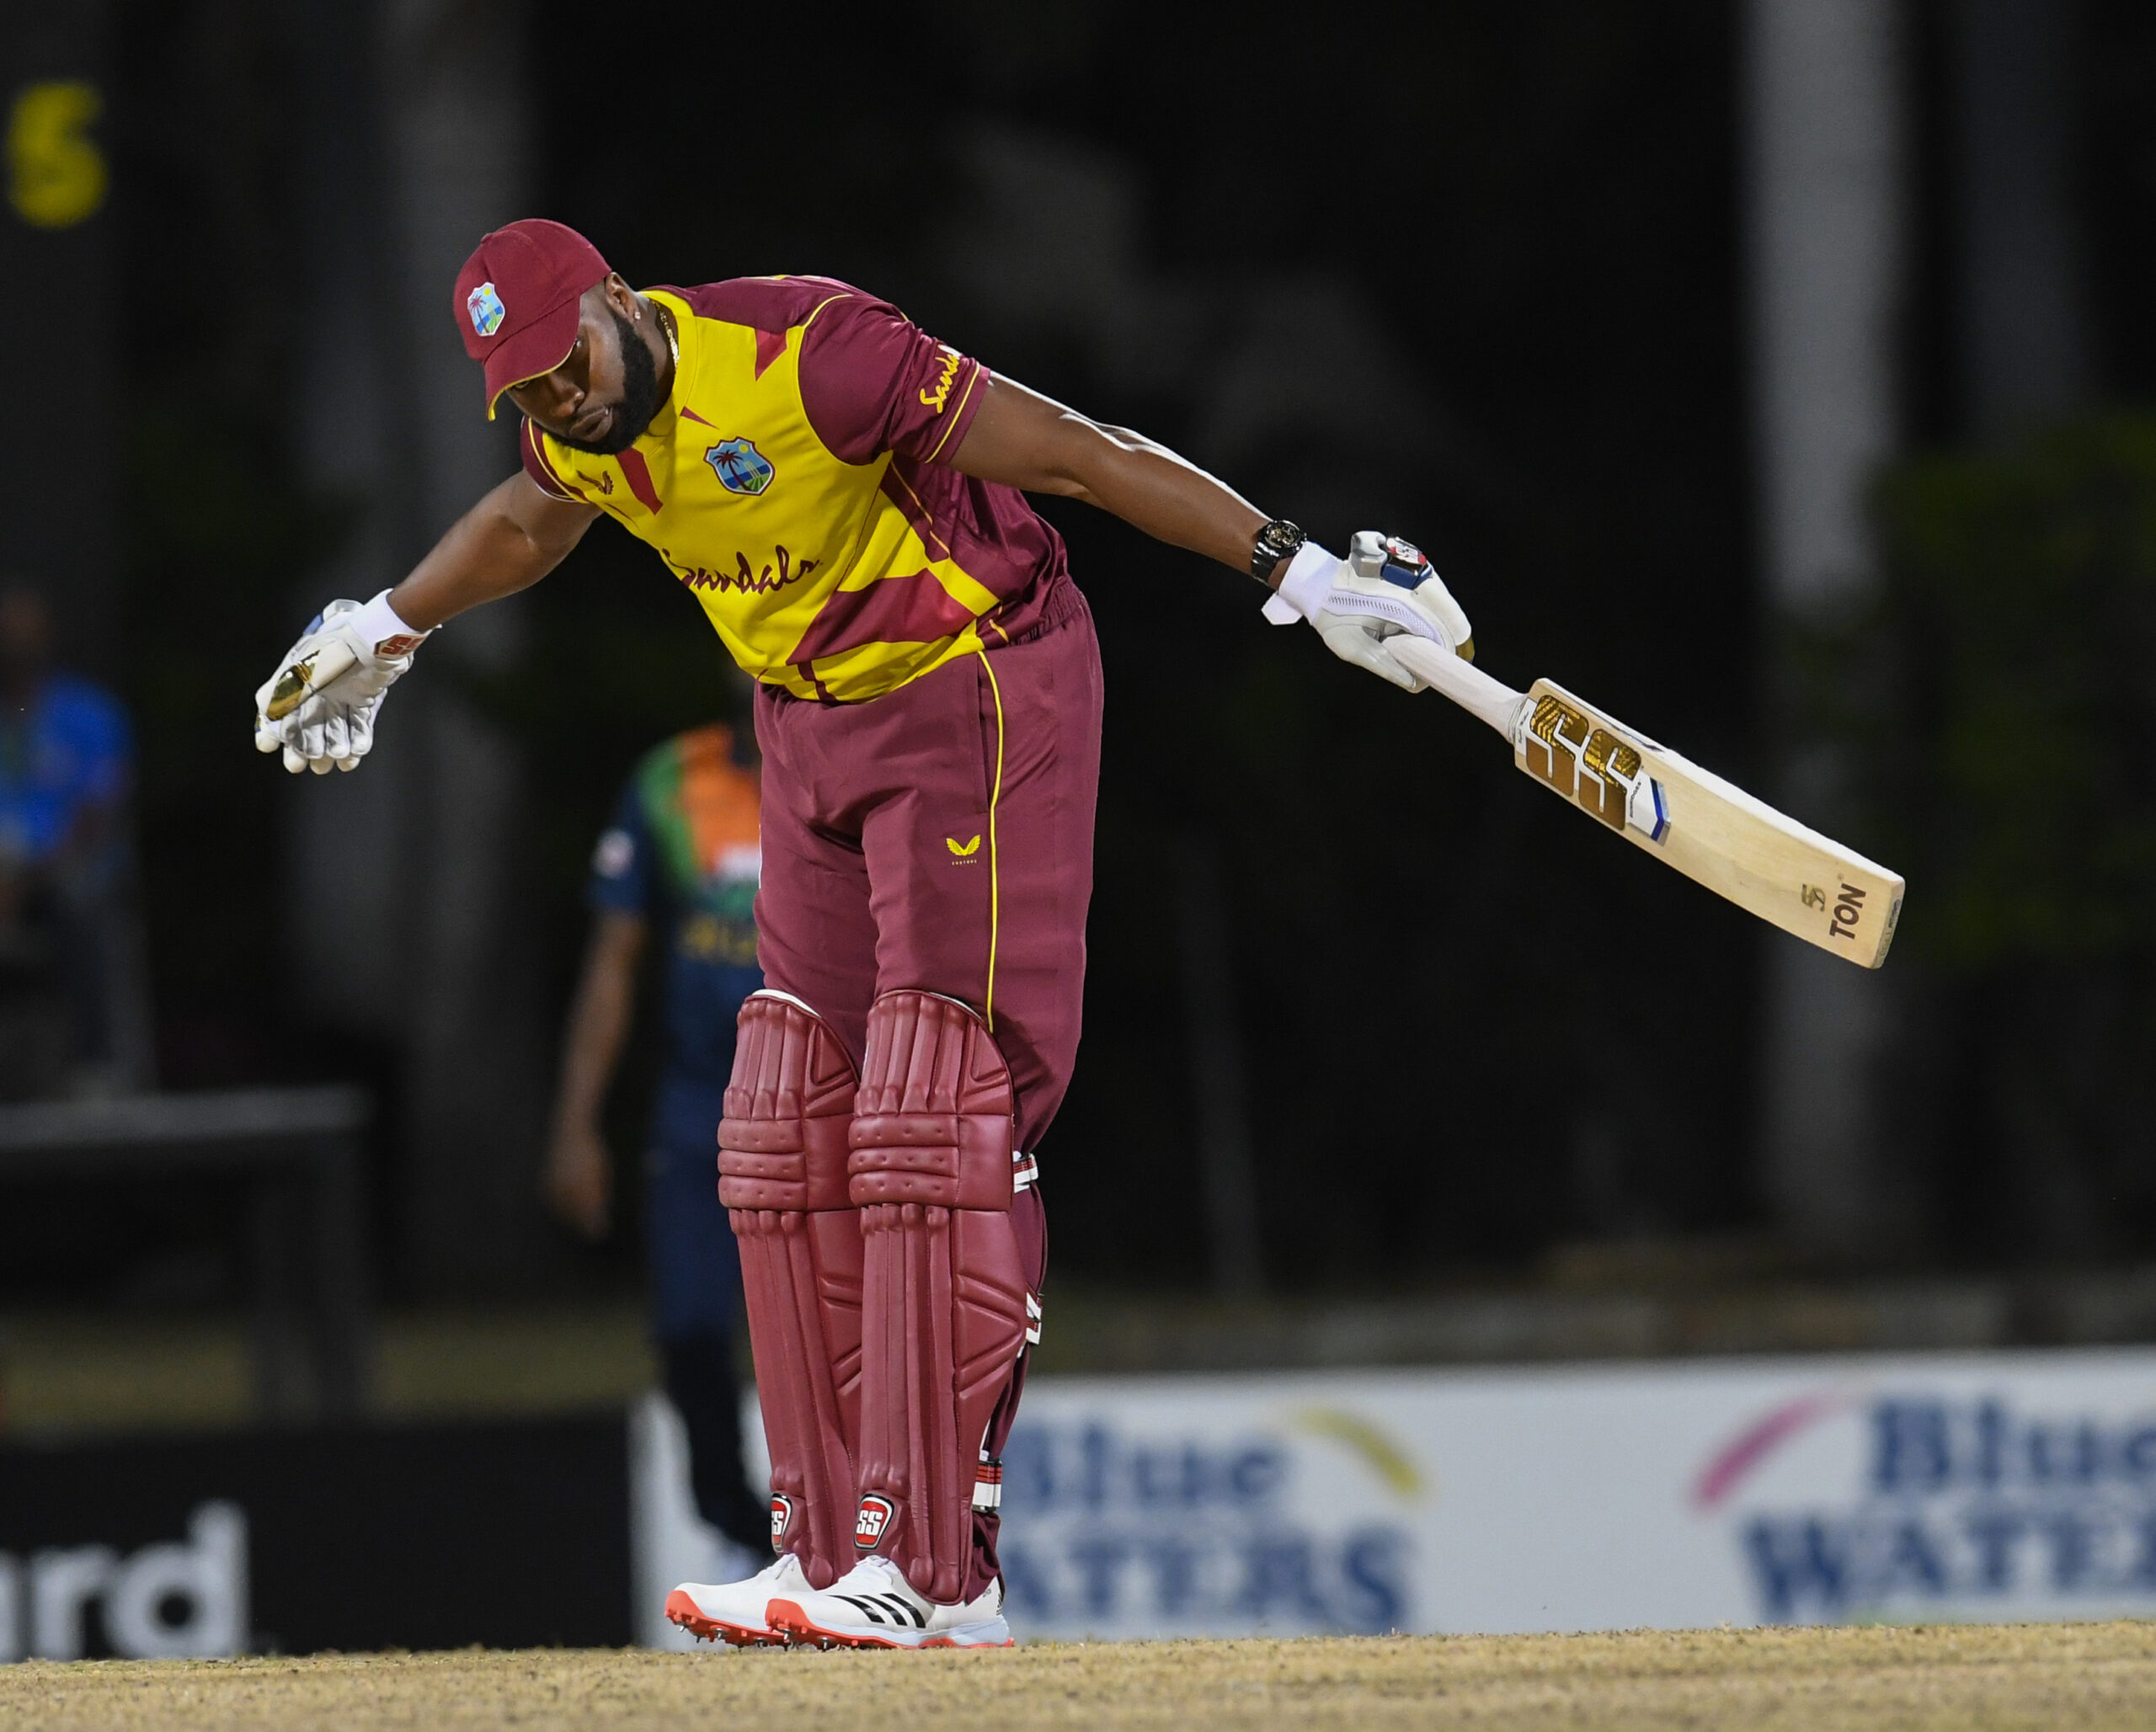 [Cricket T20] Kieron Pollard – 6 Sixes in an Over (Records are meant to be broken)